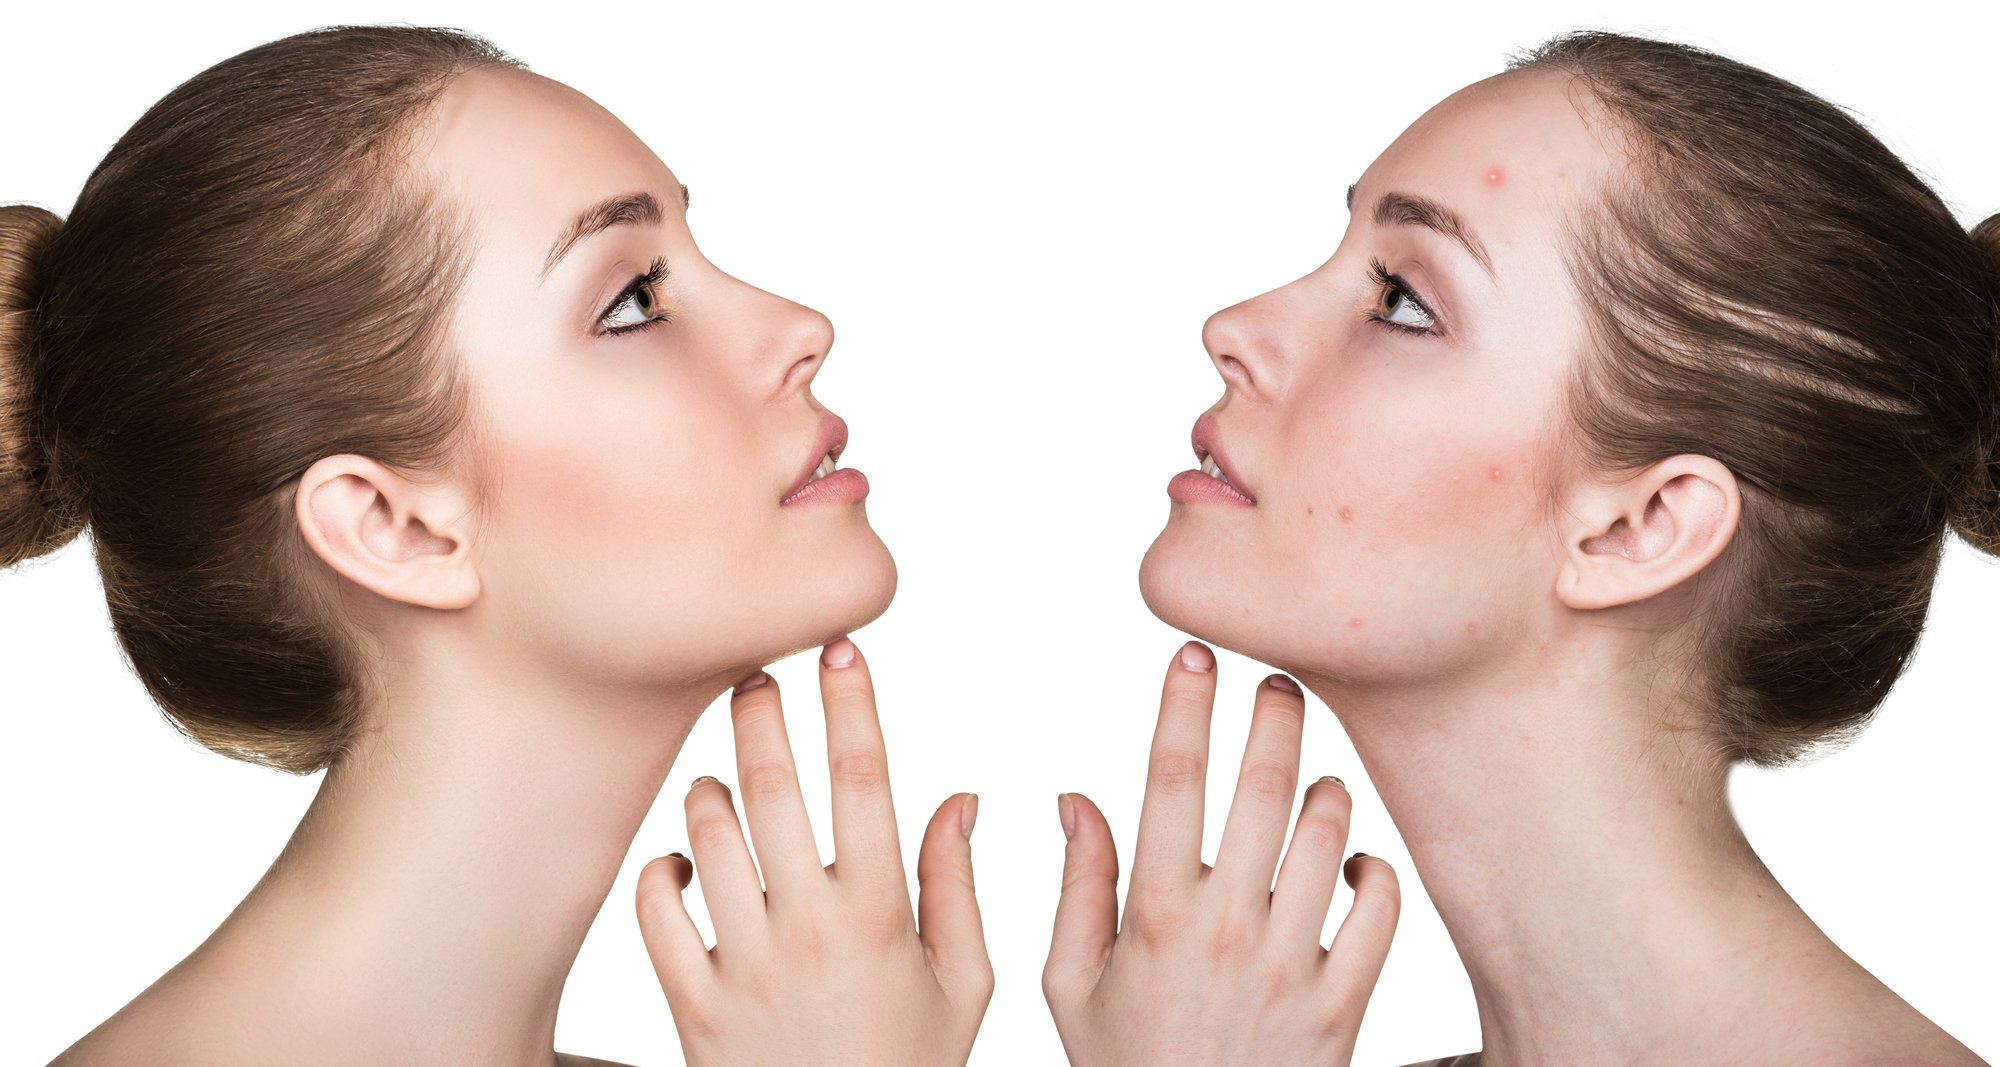 Comparison portrait of problematic skin